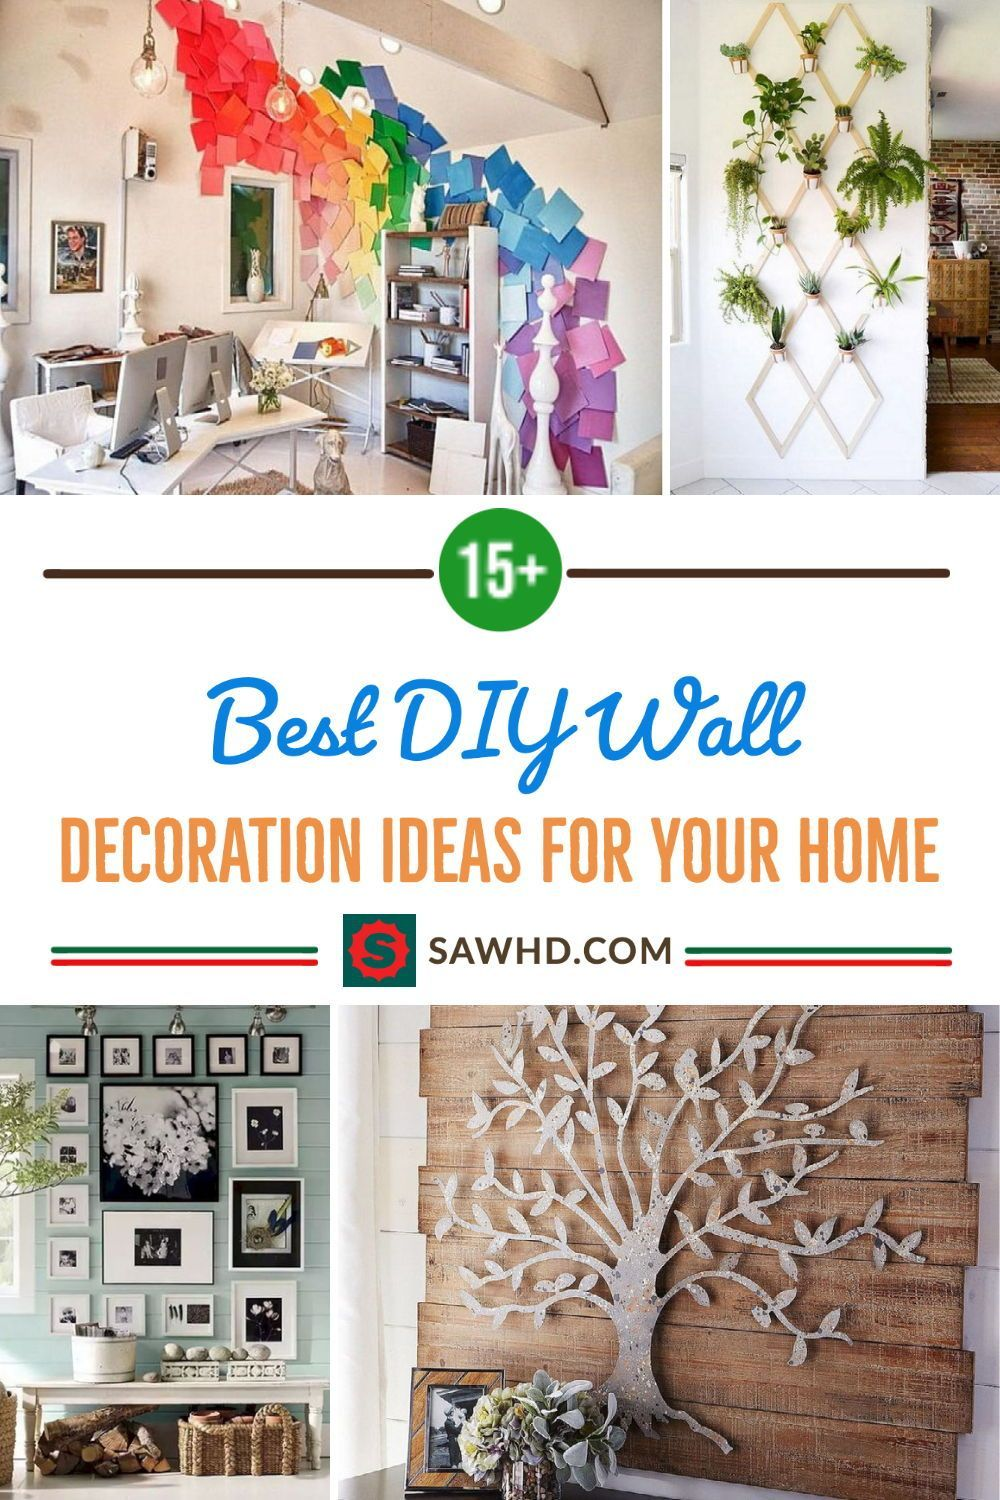 15 Best Diy Wall Decoration Ideas For Your Home Diy Rustic Wall Diy Wall Design Diy Wall Decor